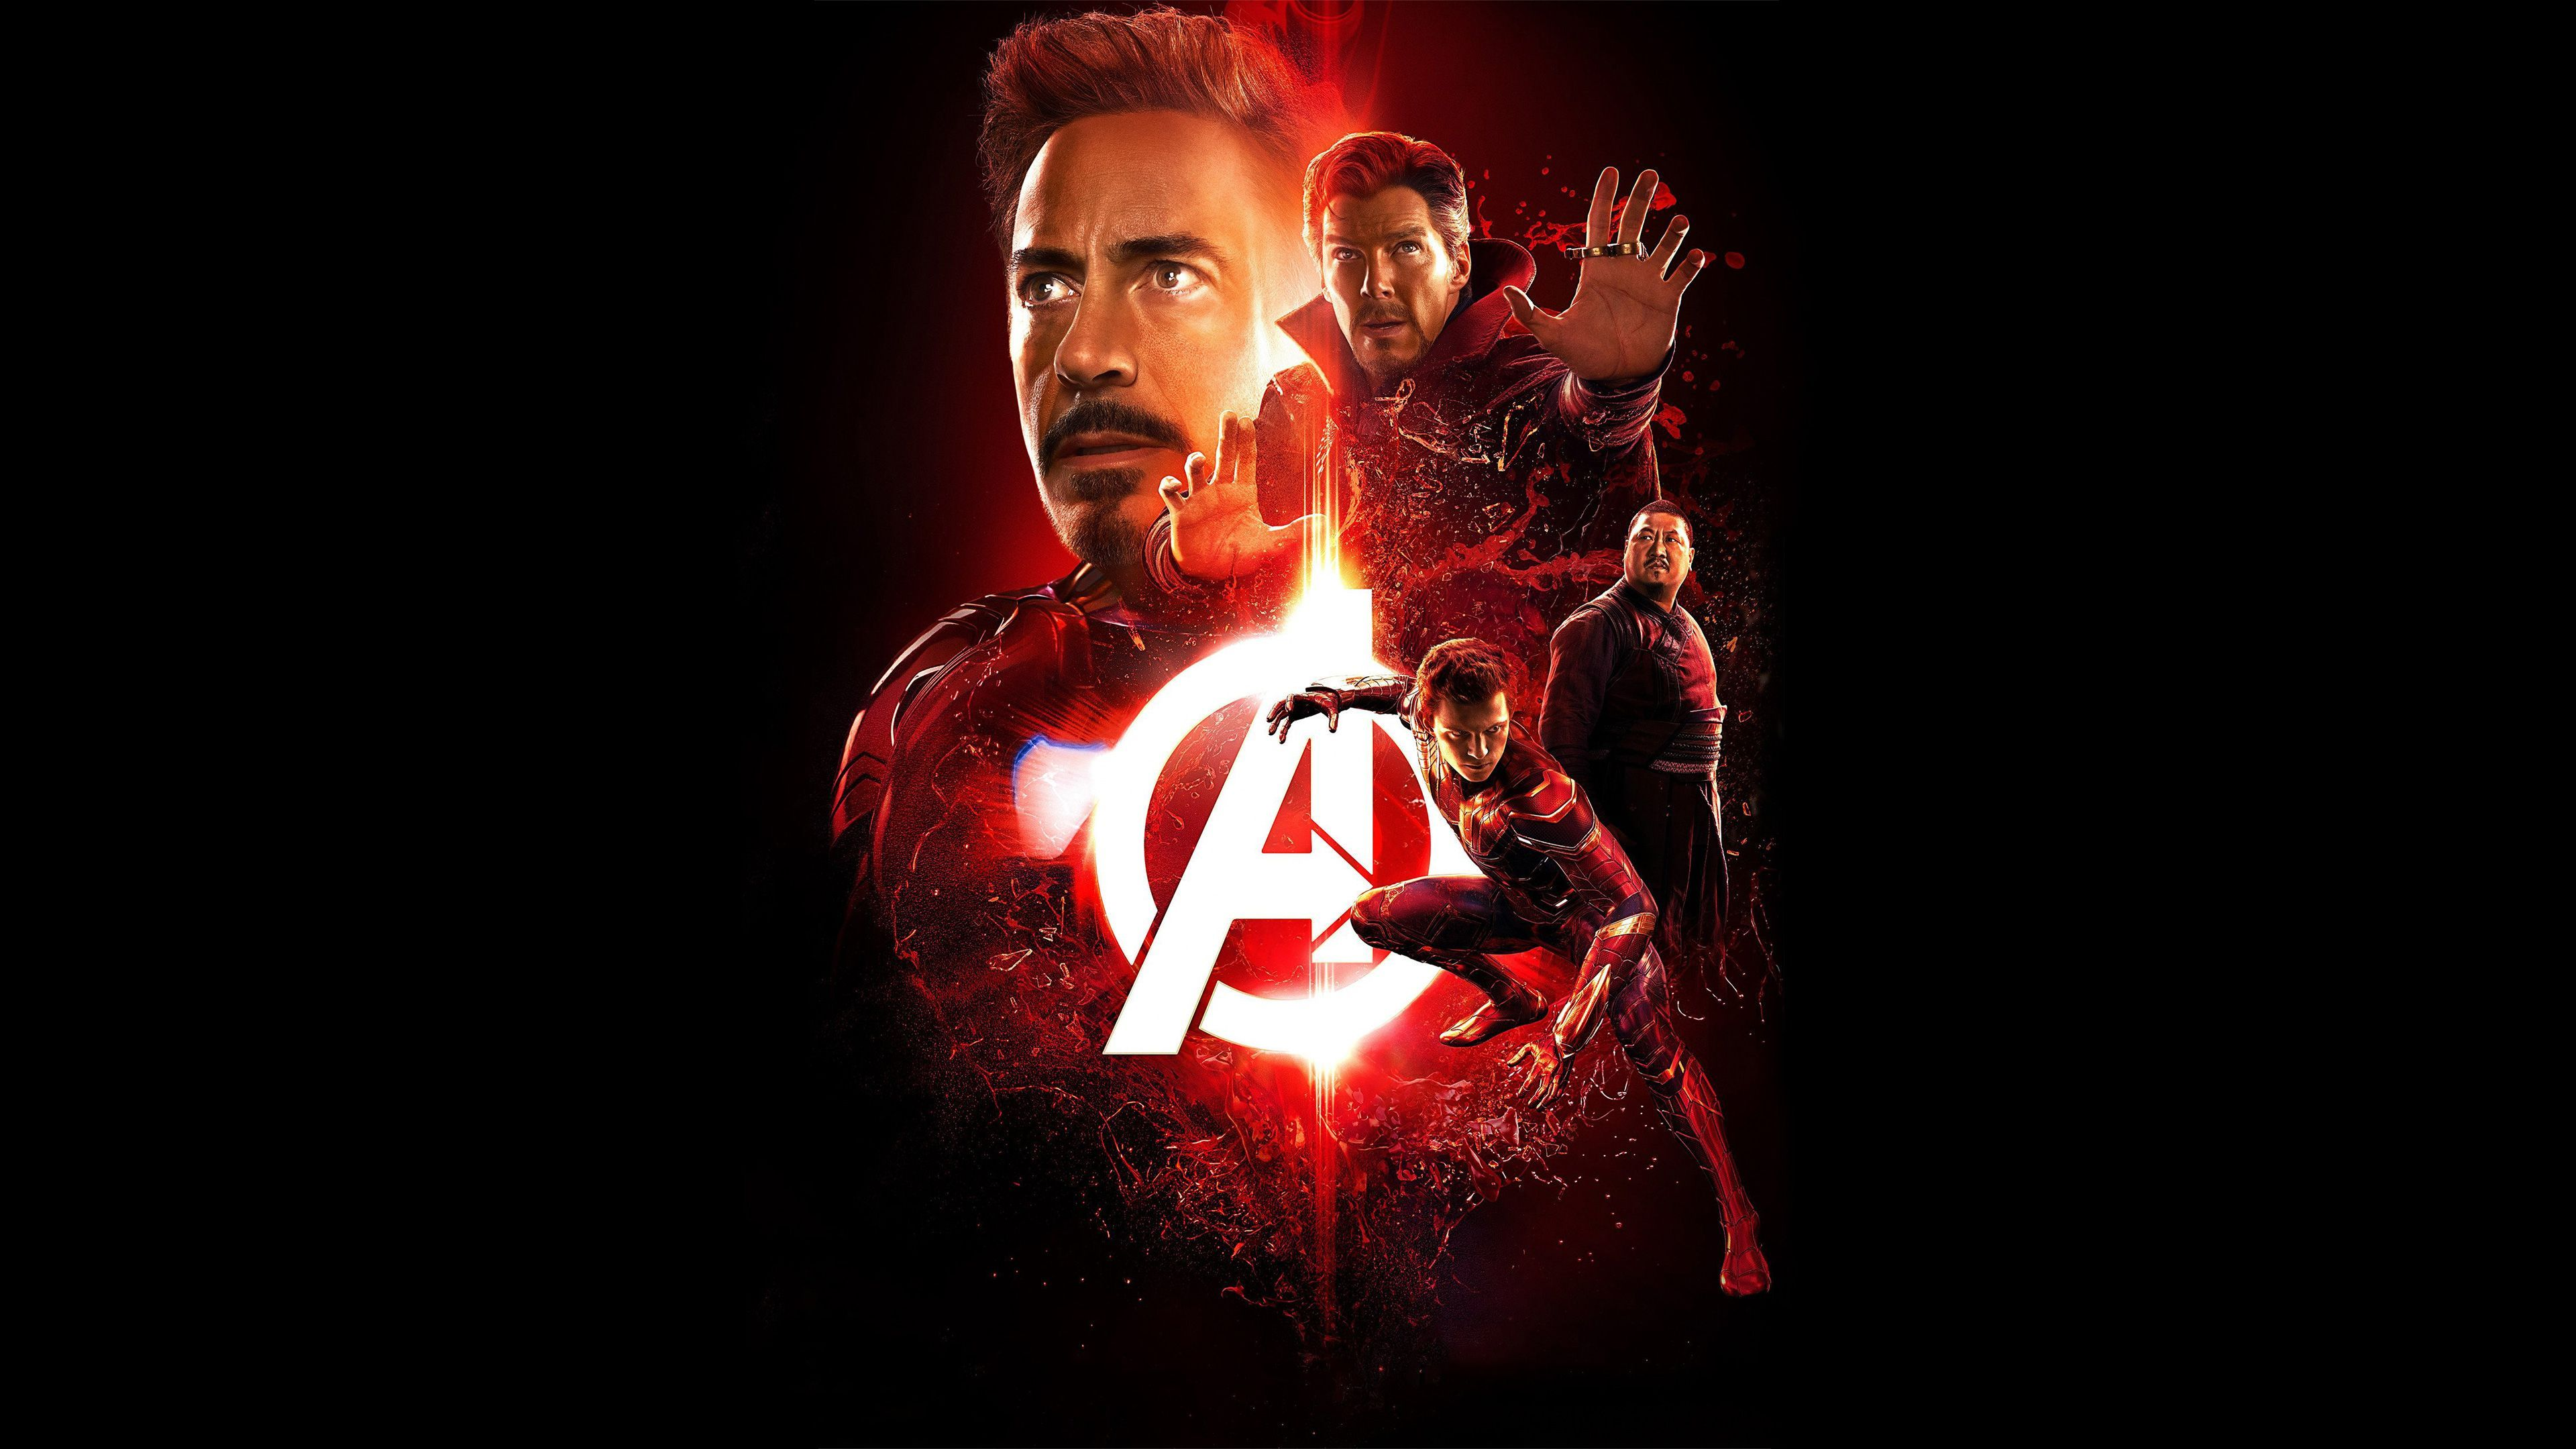 2018 Avengers Laptop Wallpapers Top Free 2018 Avengers Laptop Backgrounds Wallpaperaccess Iron Man Wallpaper Avengers Wallpaper Thor Wallpaper